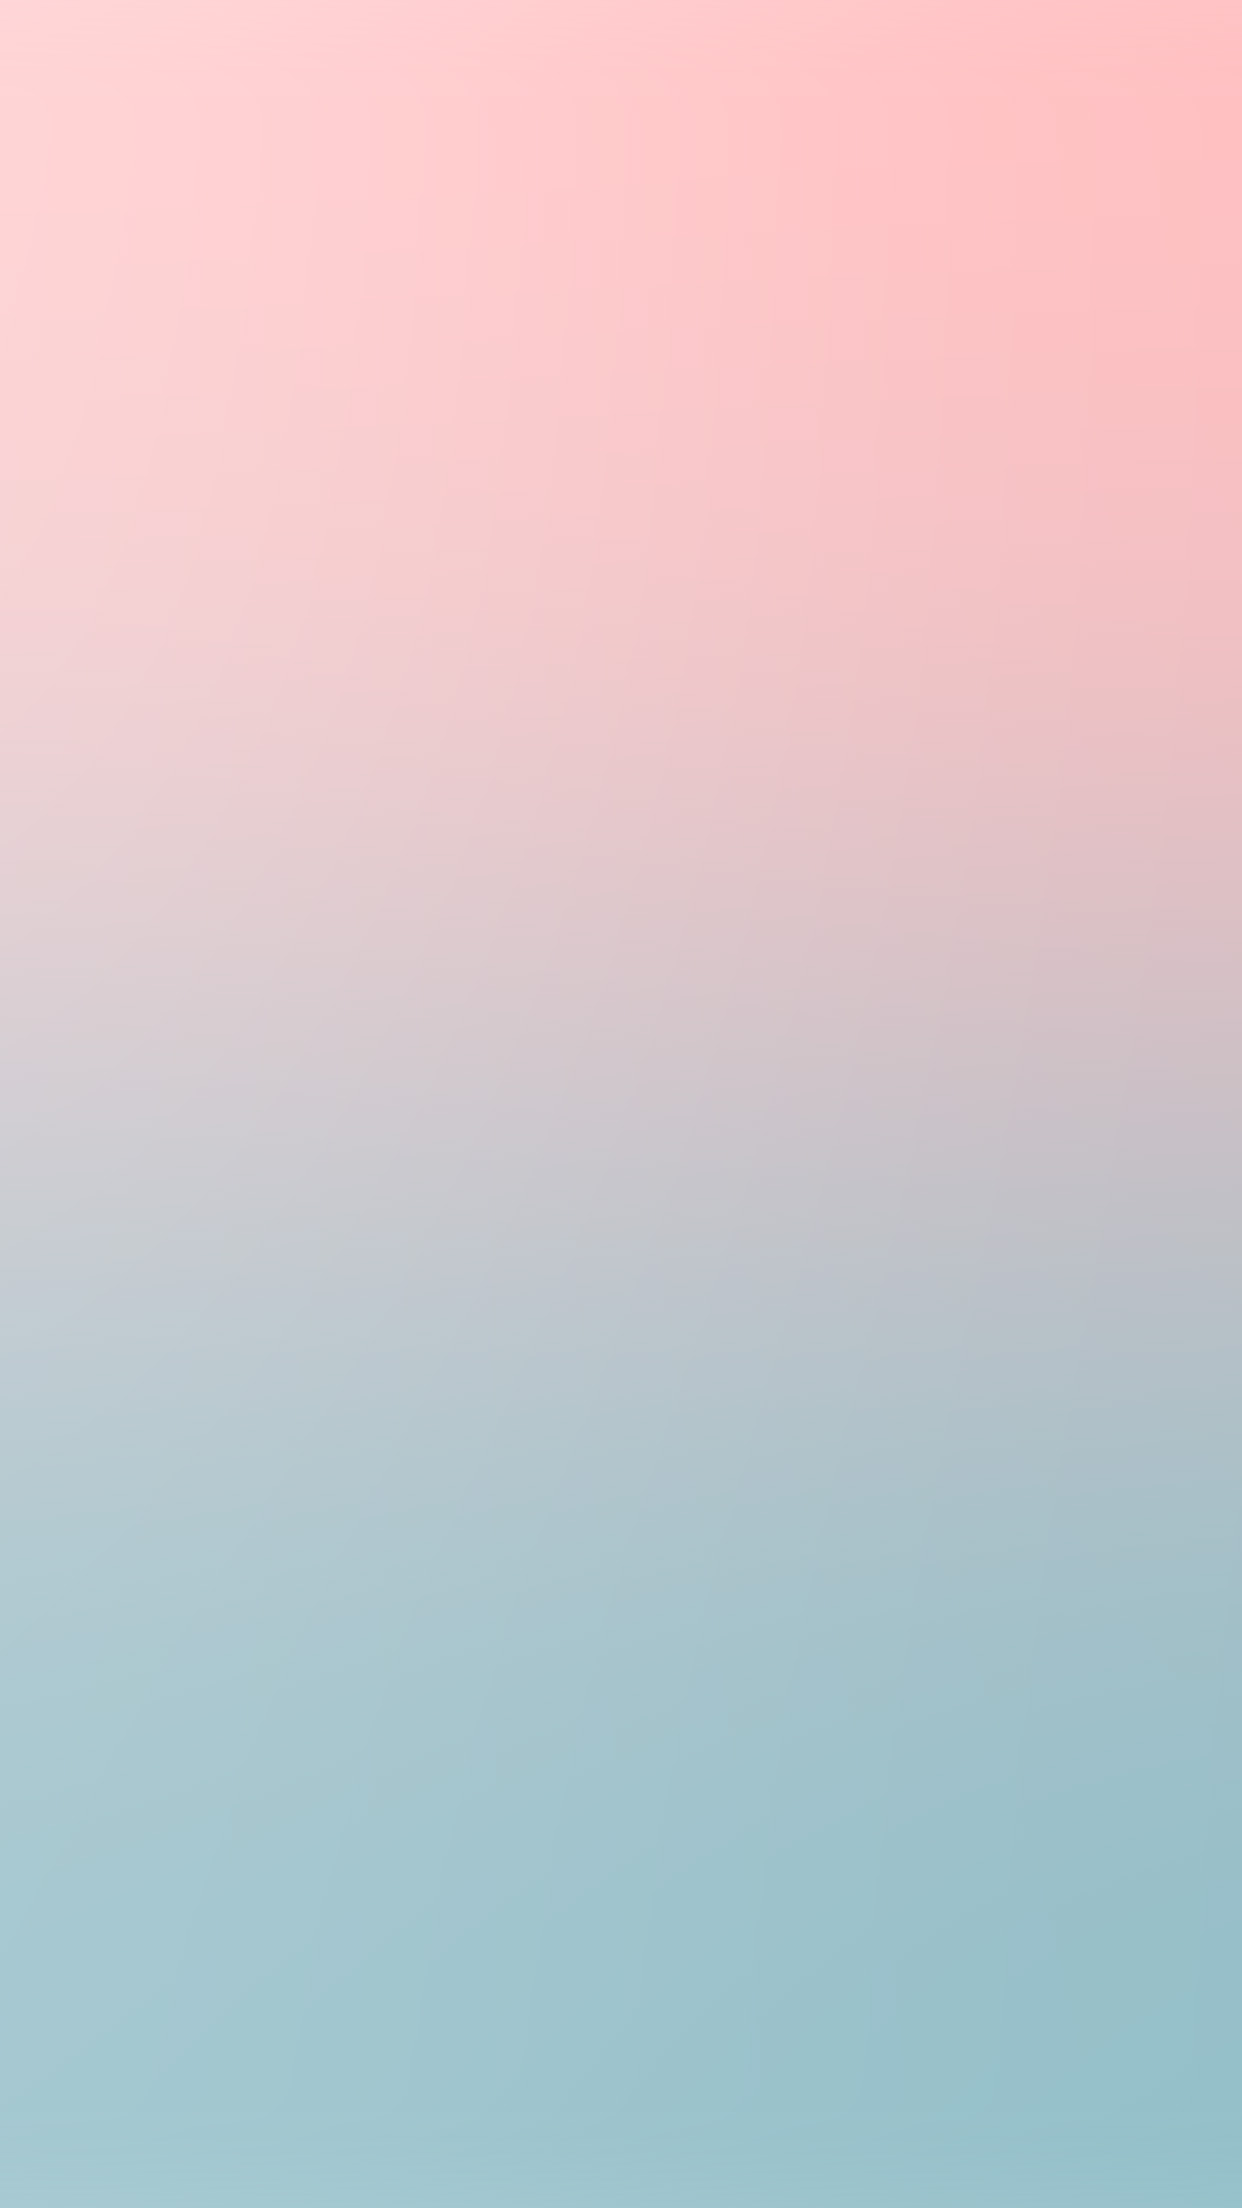 Cute Wallpapers In Pink Colour Sm07 Pink Blue Soft Pastel Blur Gradation Wallpaper